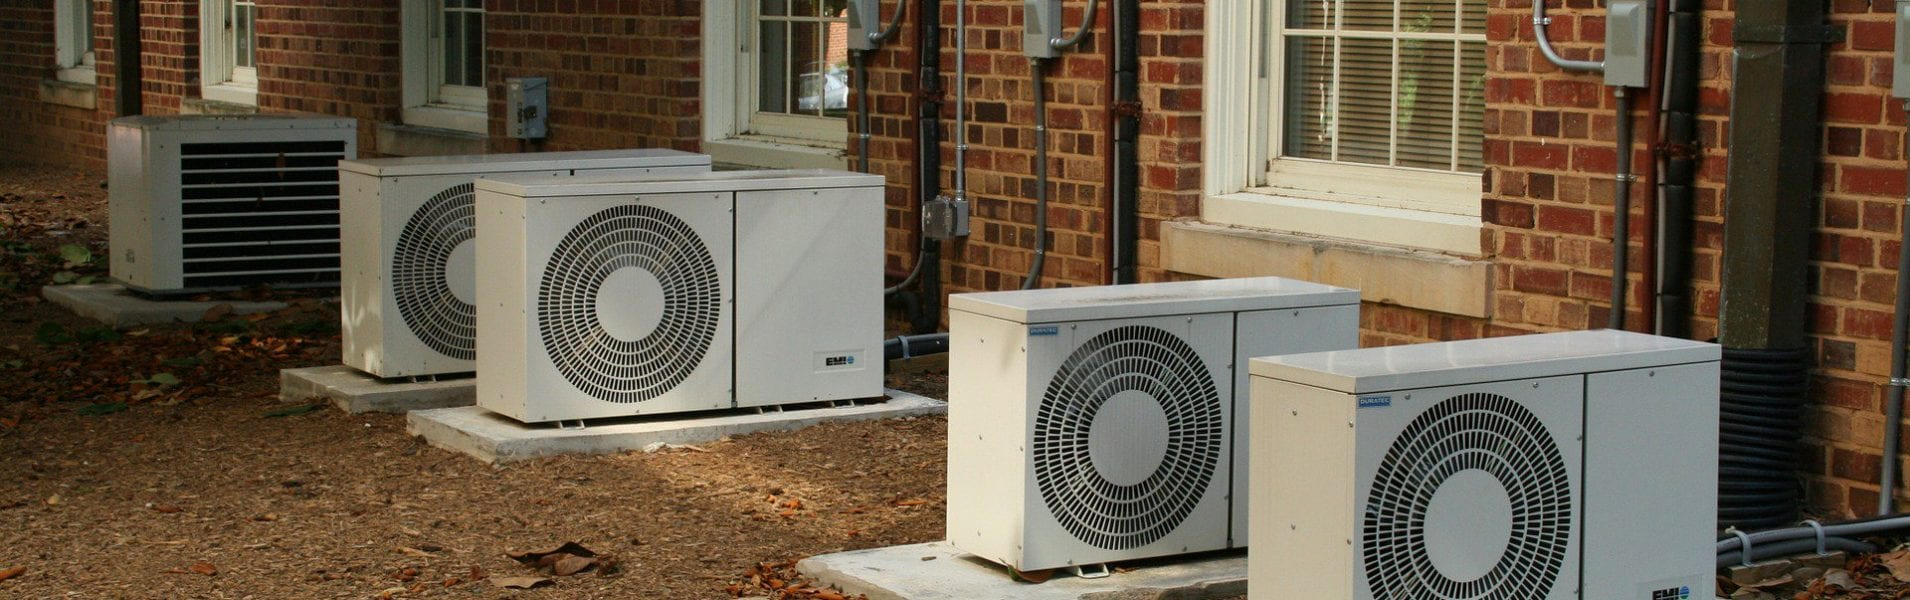 Heat, AC Repair, installation, service in OKC, oklahoma city